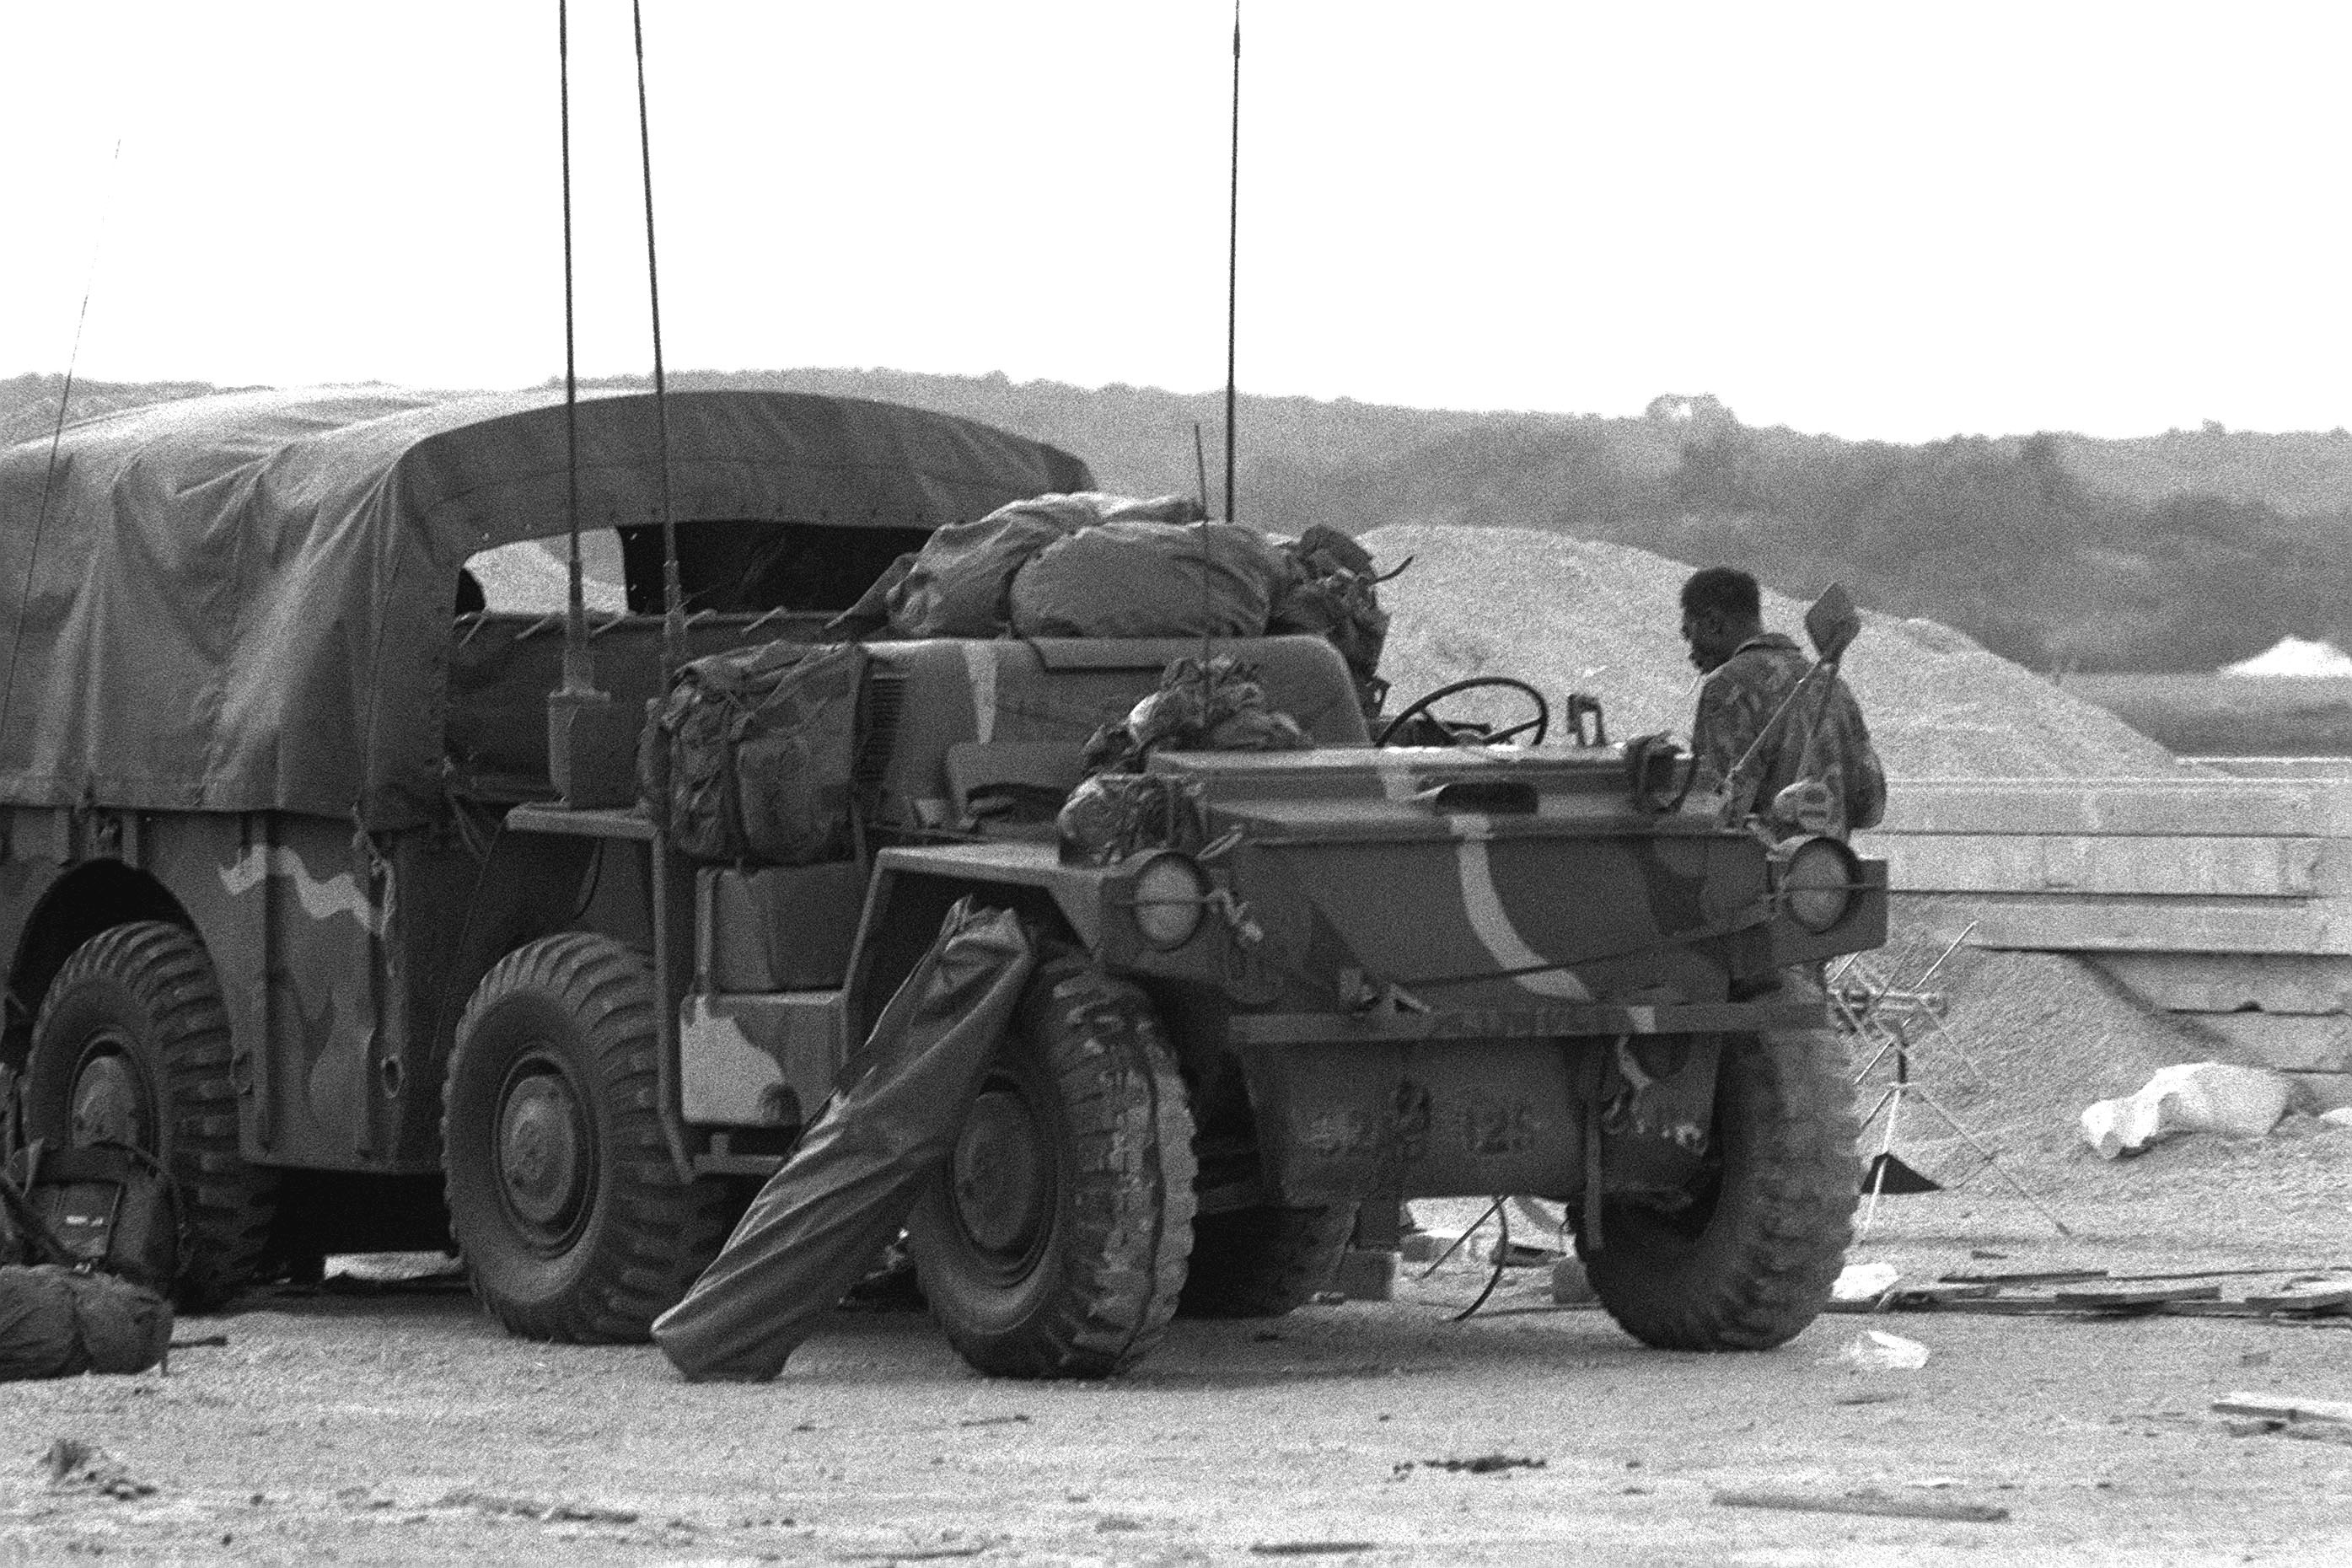 An M561 Gama Goat truck near Point Salines Airfield during the multiservice, multinational Operation URGENT FURY